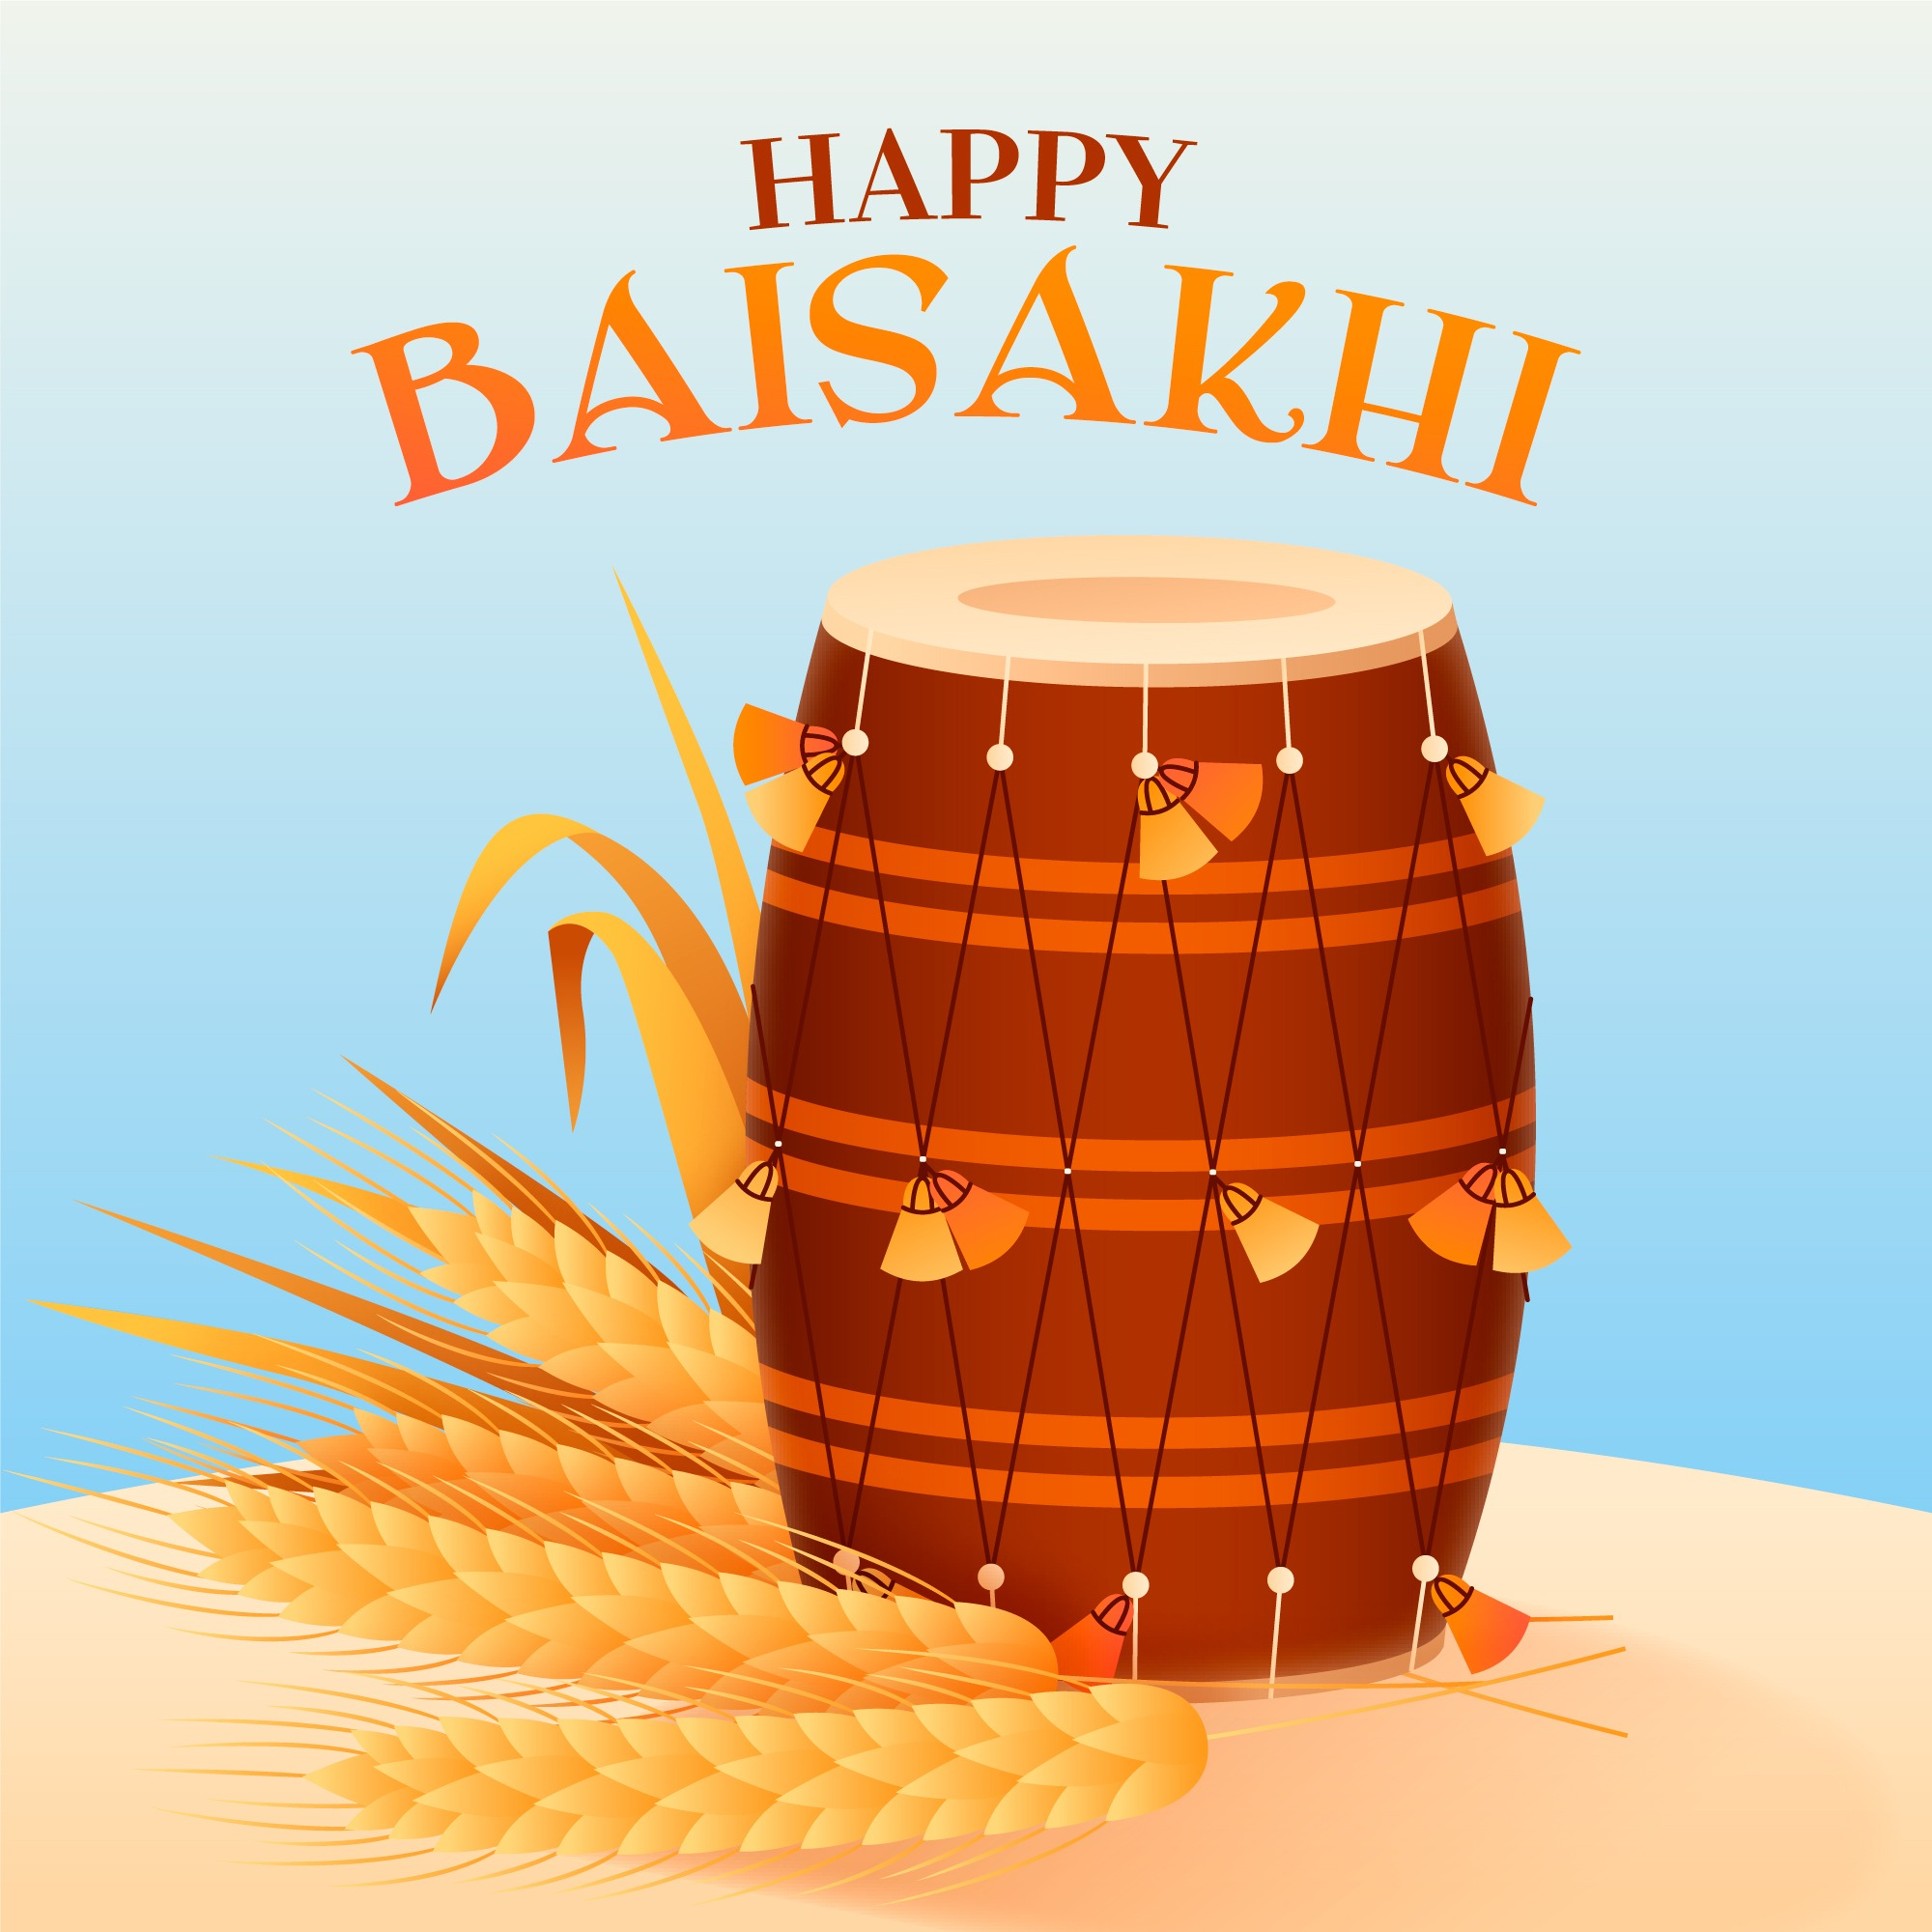 happy baisakhi image download